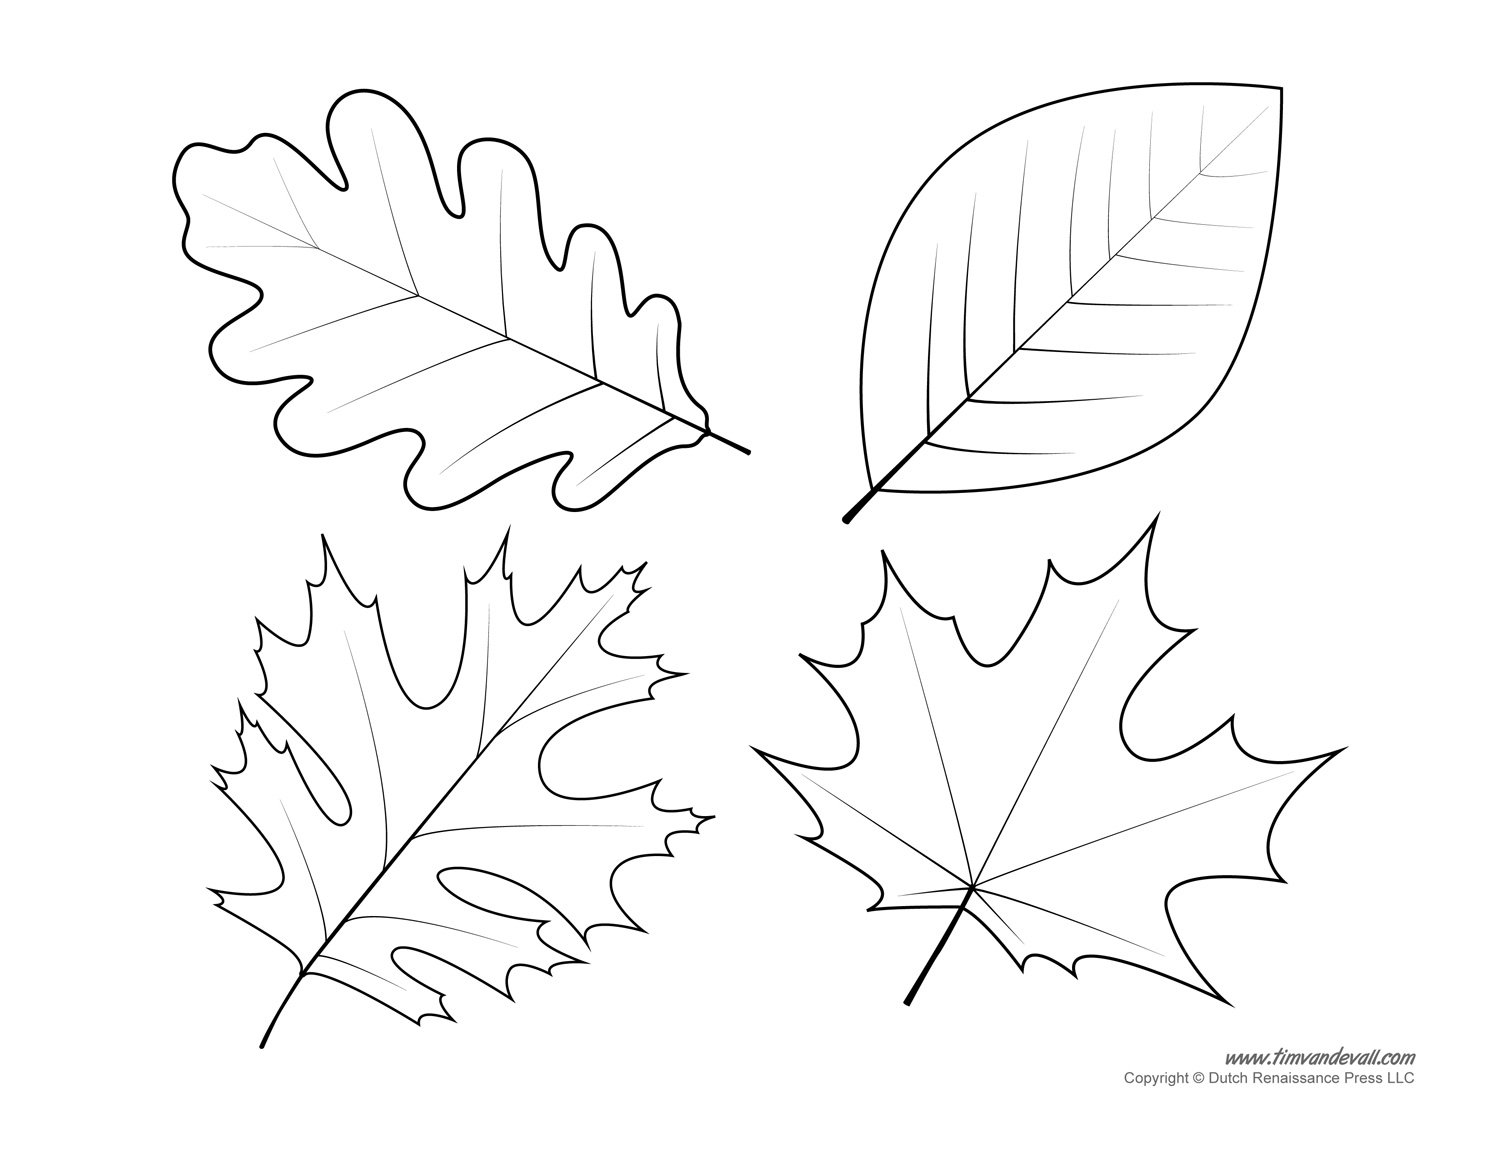 Maple Leaf Drawing Template at GetDrawings.com | Free for personal ...